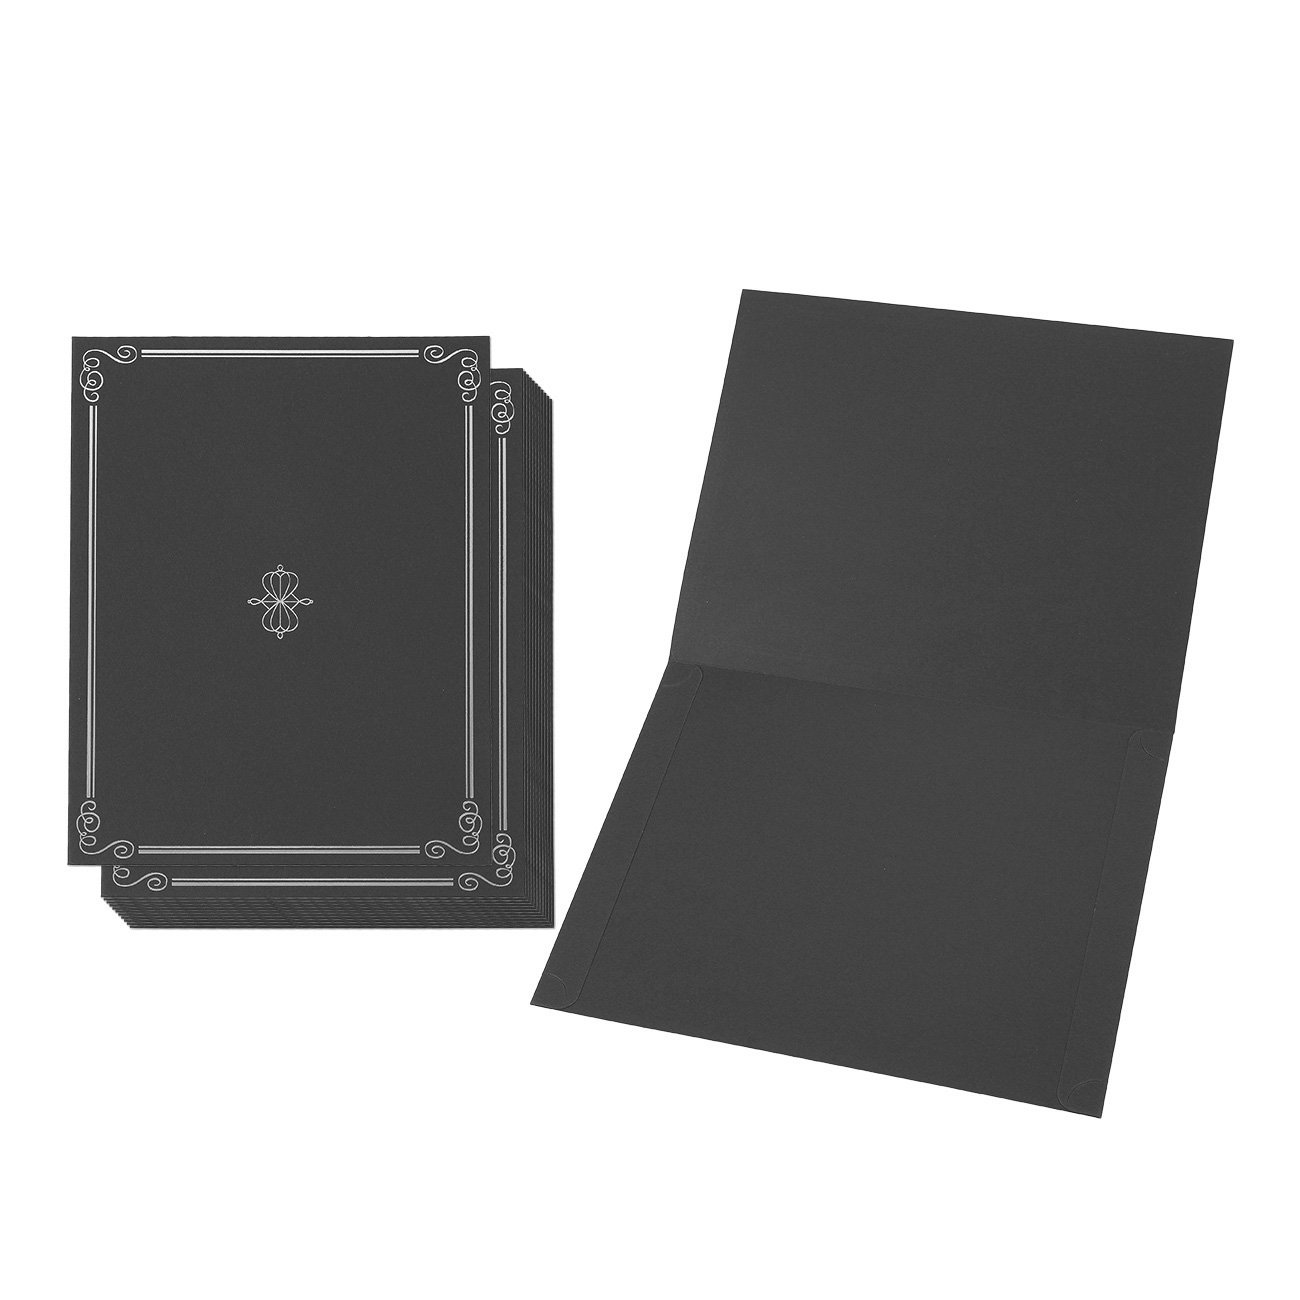 12-Pack Certificate Holder - Diploma Cover, Document Cover for Letter-Sized Award Certificates, Black, Silver Foil, 11.2 x 8.8 Inches